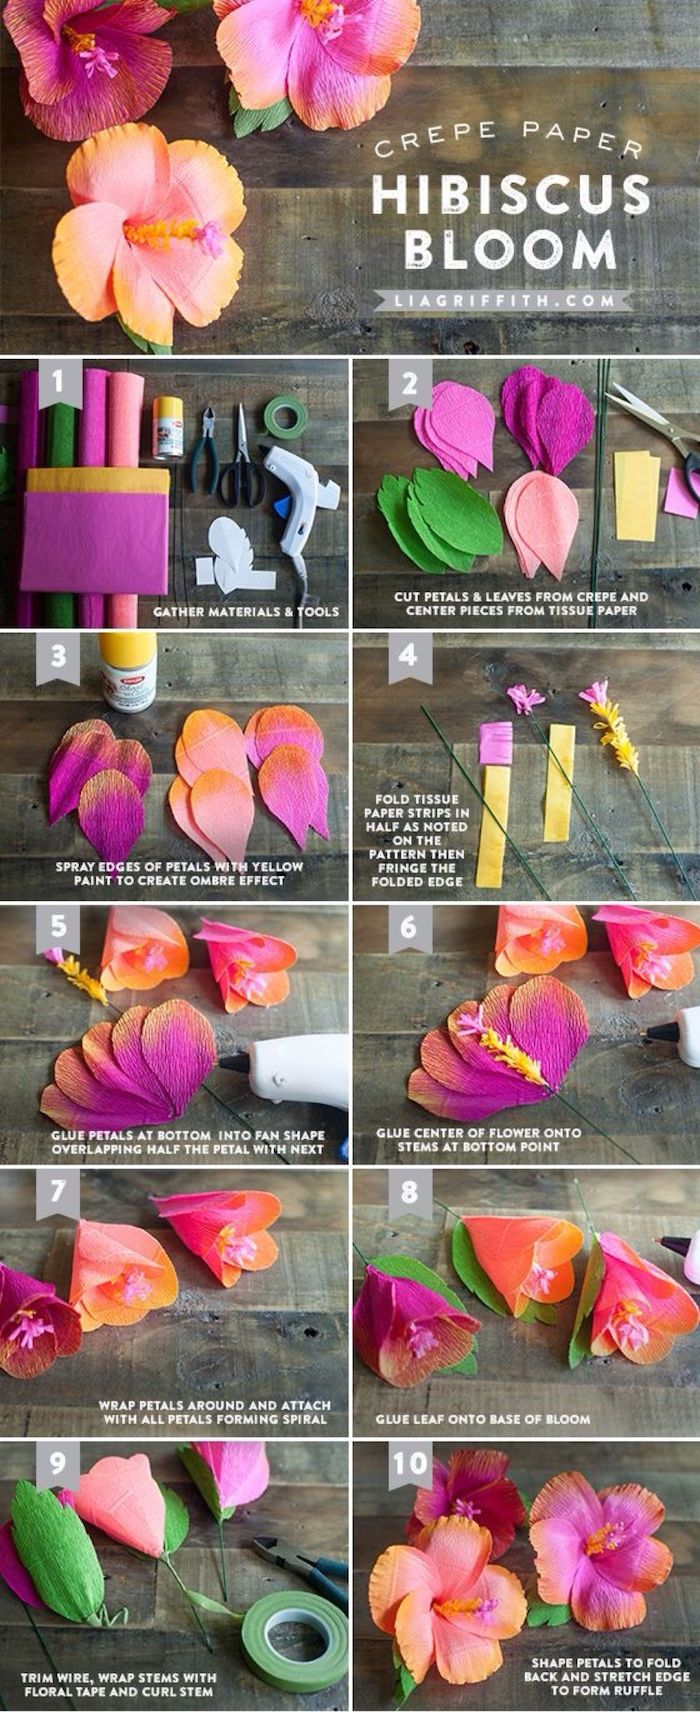 photo collage of step by step diy tutorial, paper flower decorations, how to make hibiscus bloom out of crepe paper